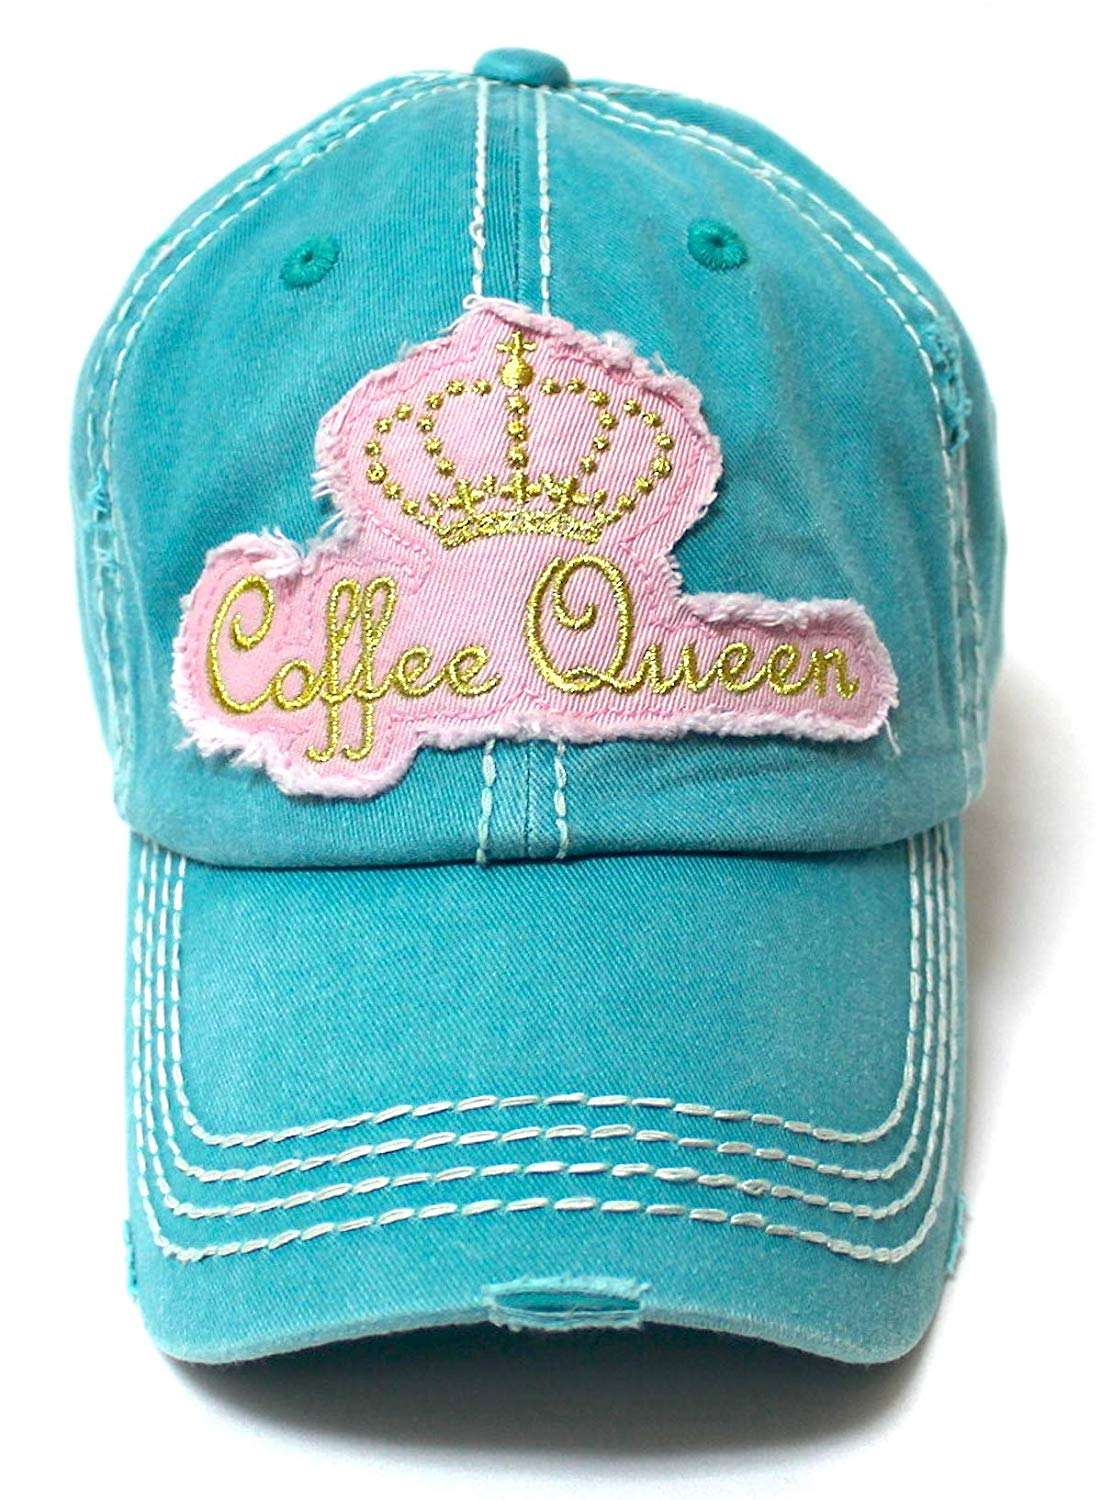 Women's Adjustable Ballcap Coffee Queen Royalty Patch Embroidery, Turquoise - Caps 'N Vintage